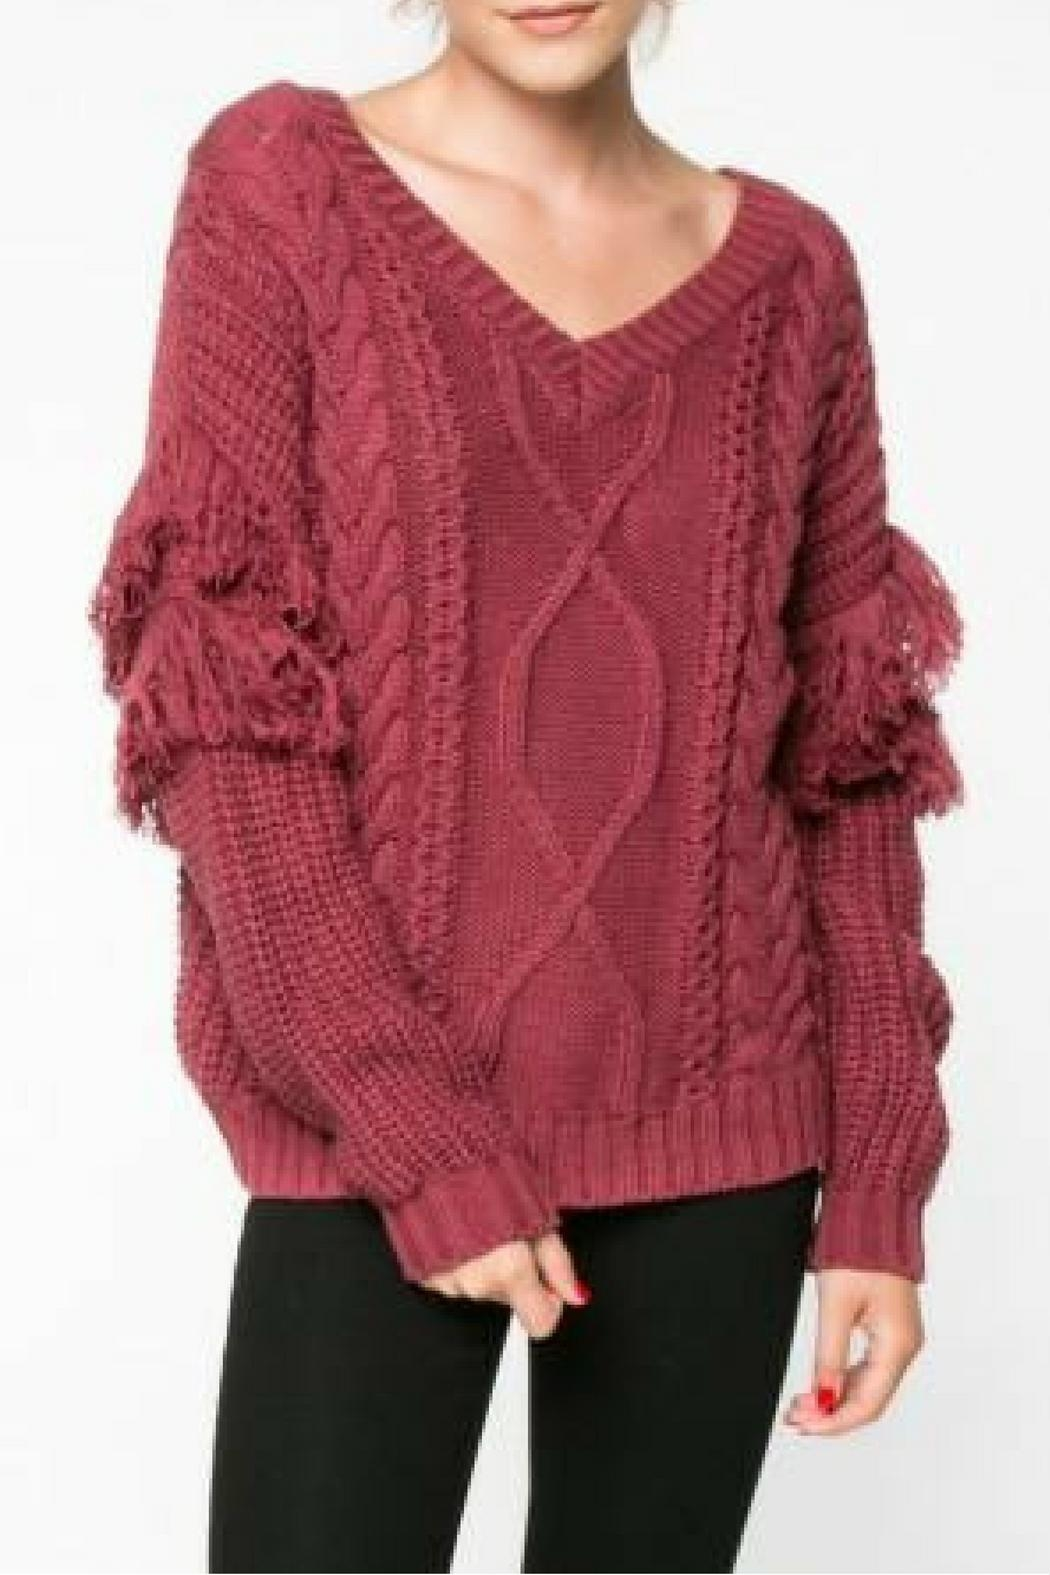 Everly Mauve Fringe Sweater - Main Image